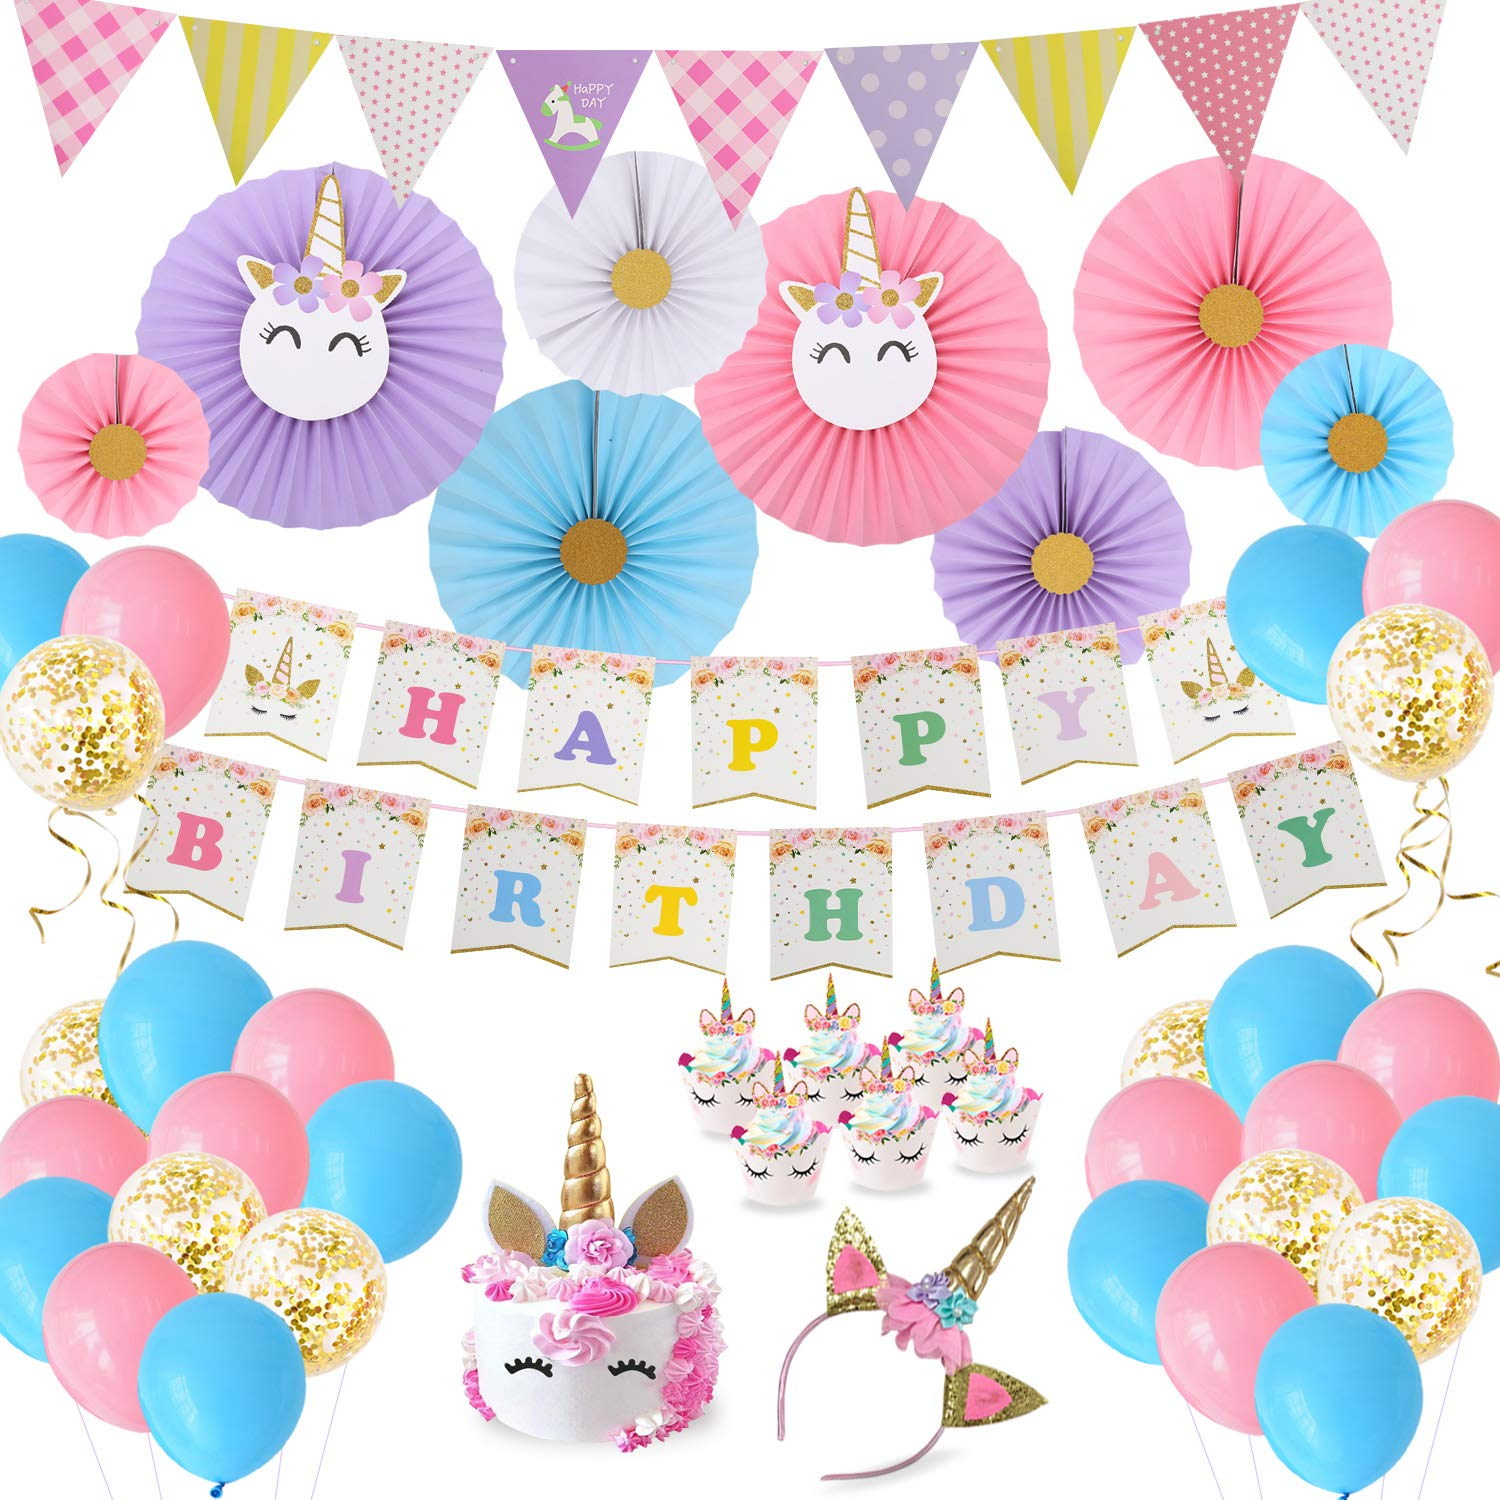 Birthday Party Decorations Baby Girls Unicorn Theme Supplies Paper Fans Cupcake Wrapper Balloons Happy Banner Headband For Kids